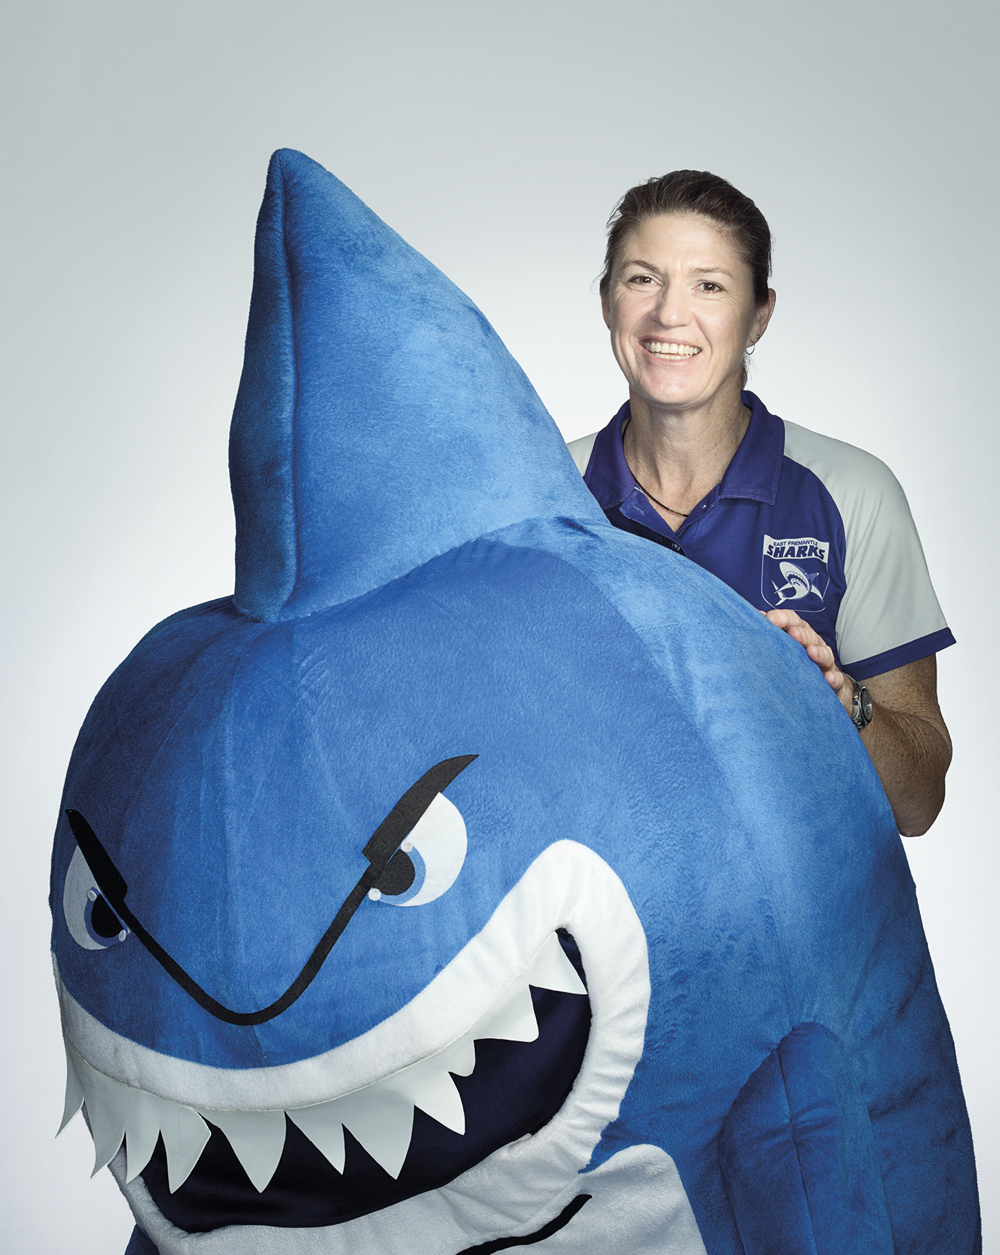 Portrait of Lynette Smith with a shark costume